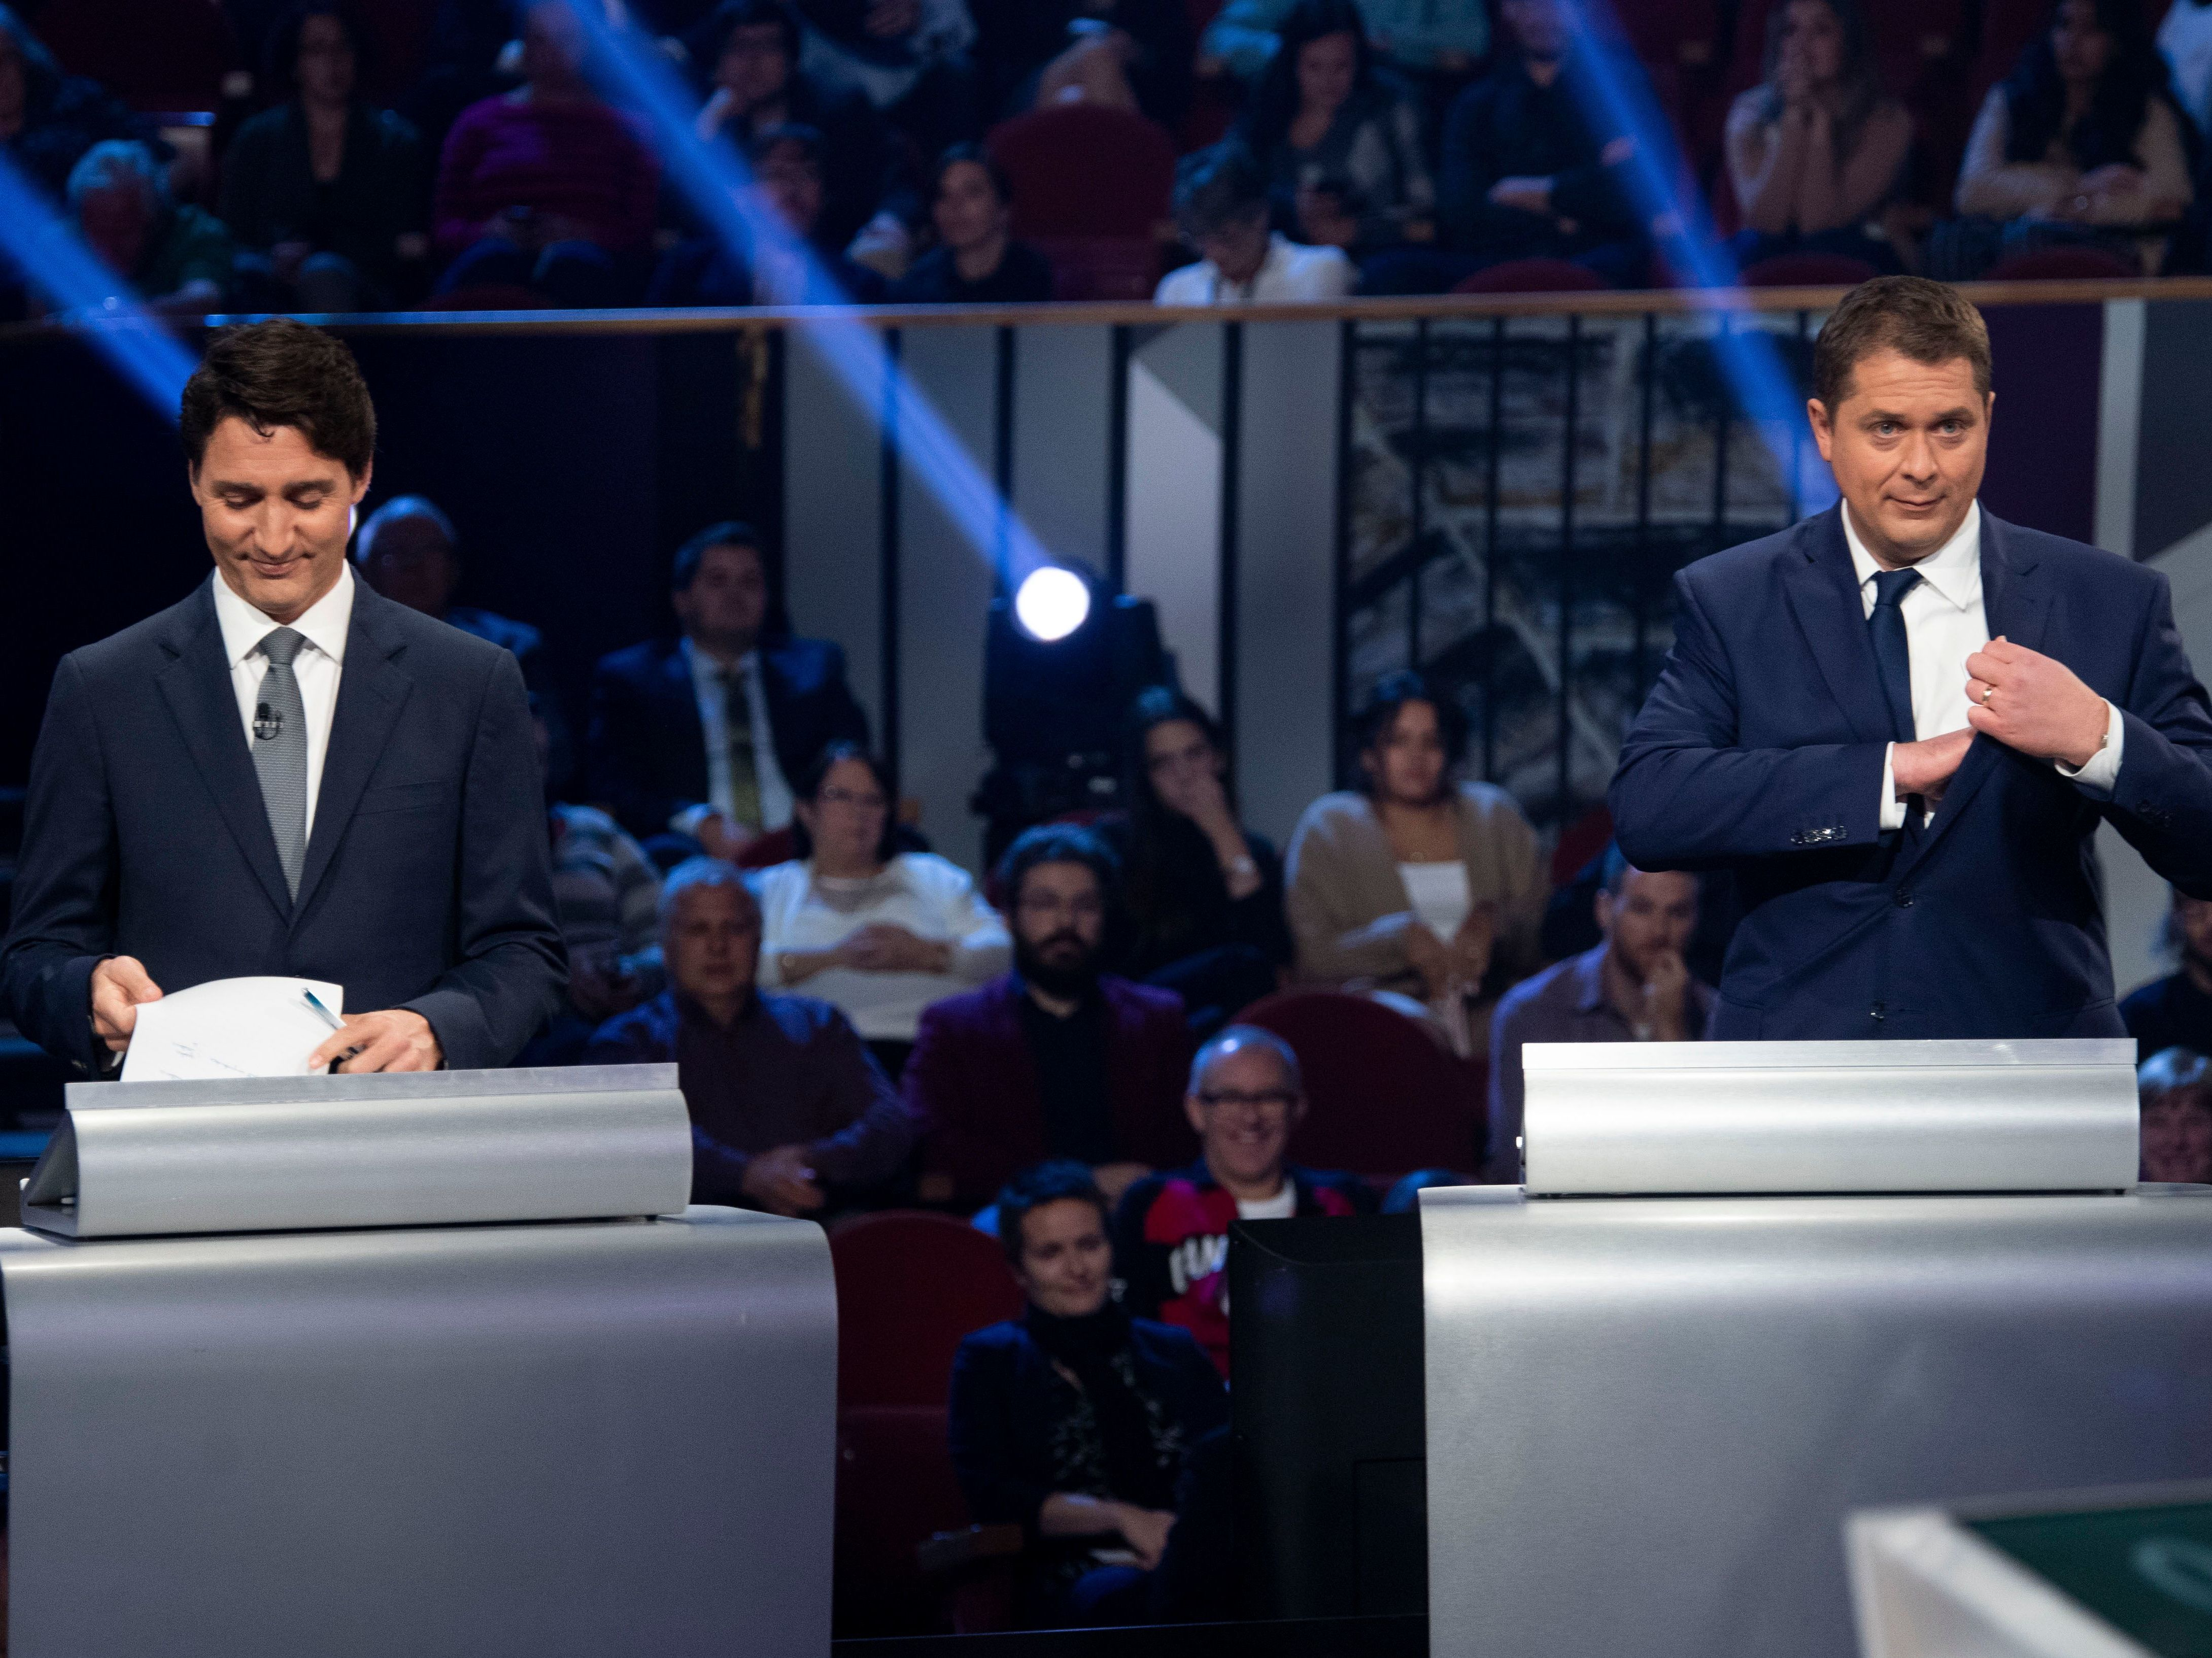 Justin Trudeau Battles For His Political Survival As Canada Gets Ready To Vote